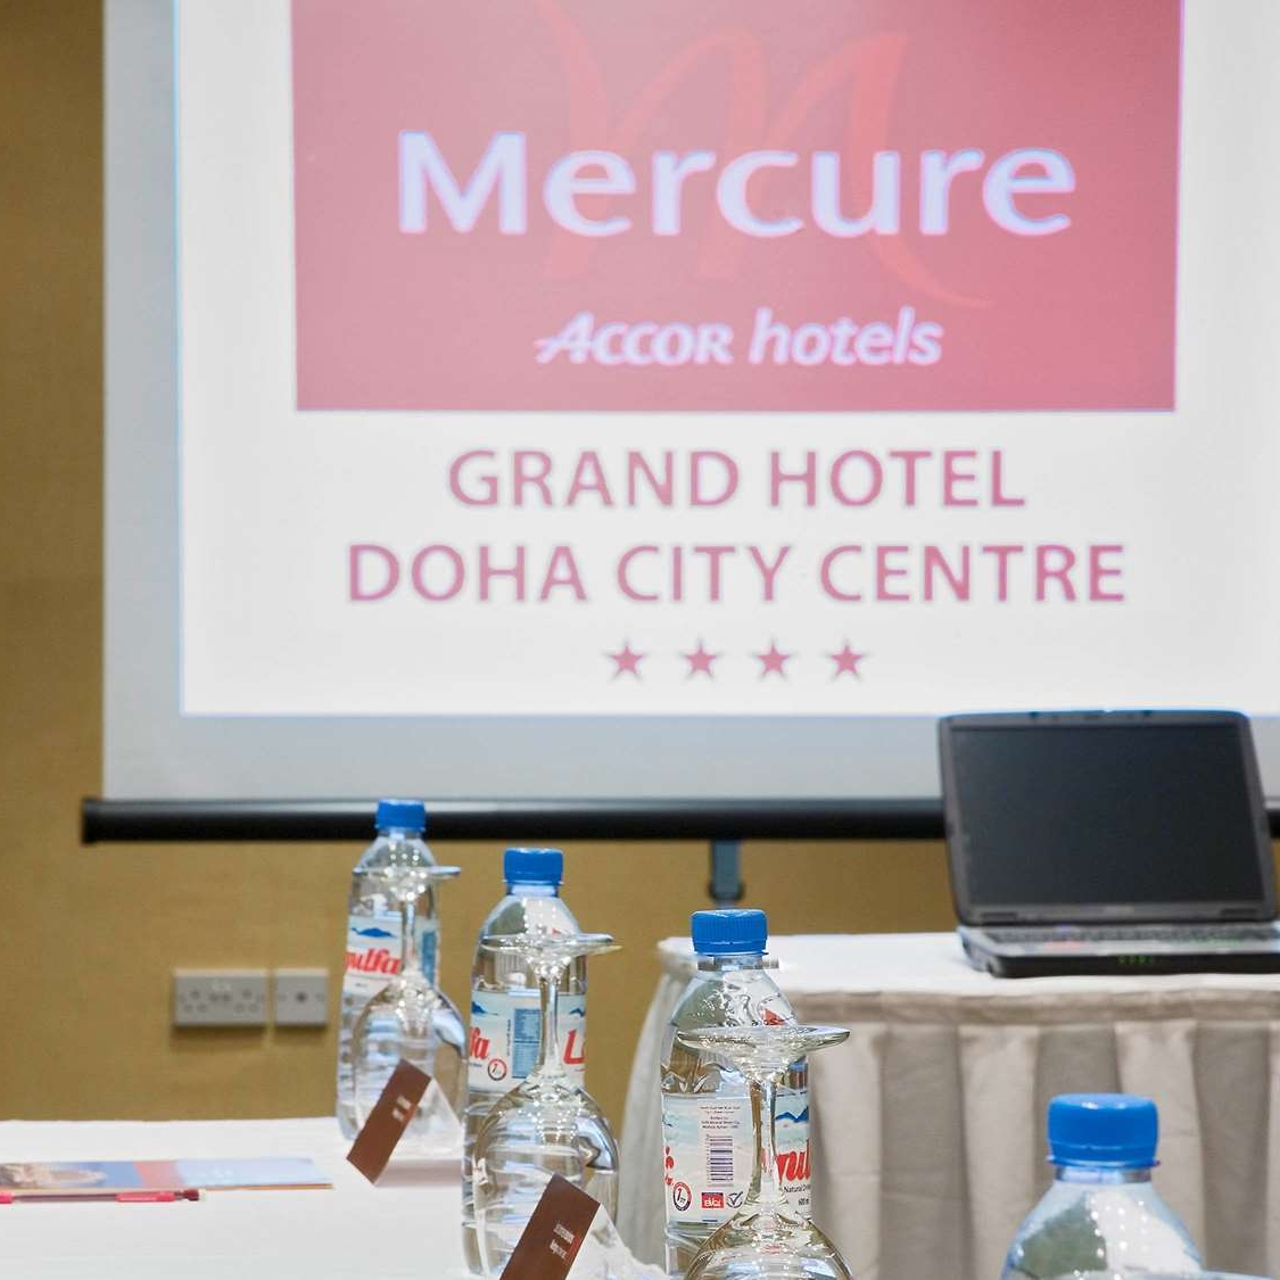 Mercure Grand Hotel Doha City Centre Doha Doha Municipality At Hrs With Free Services